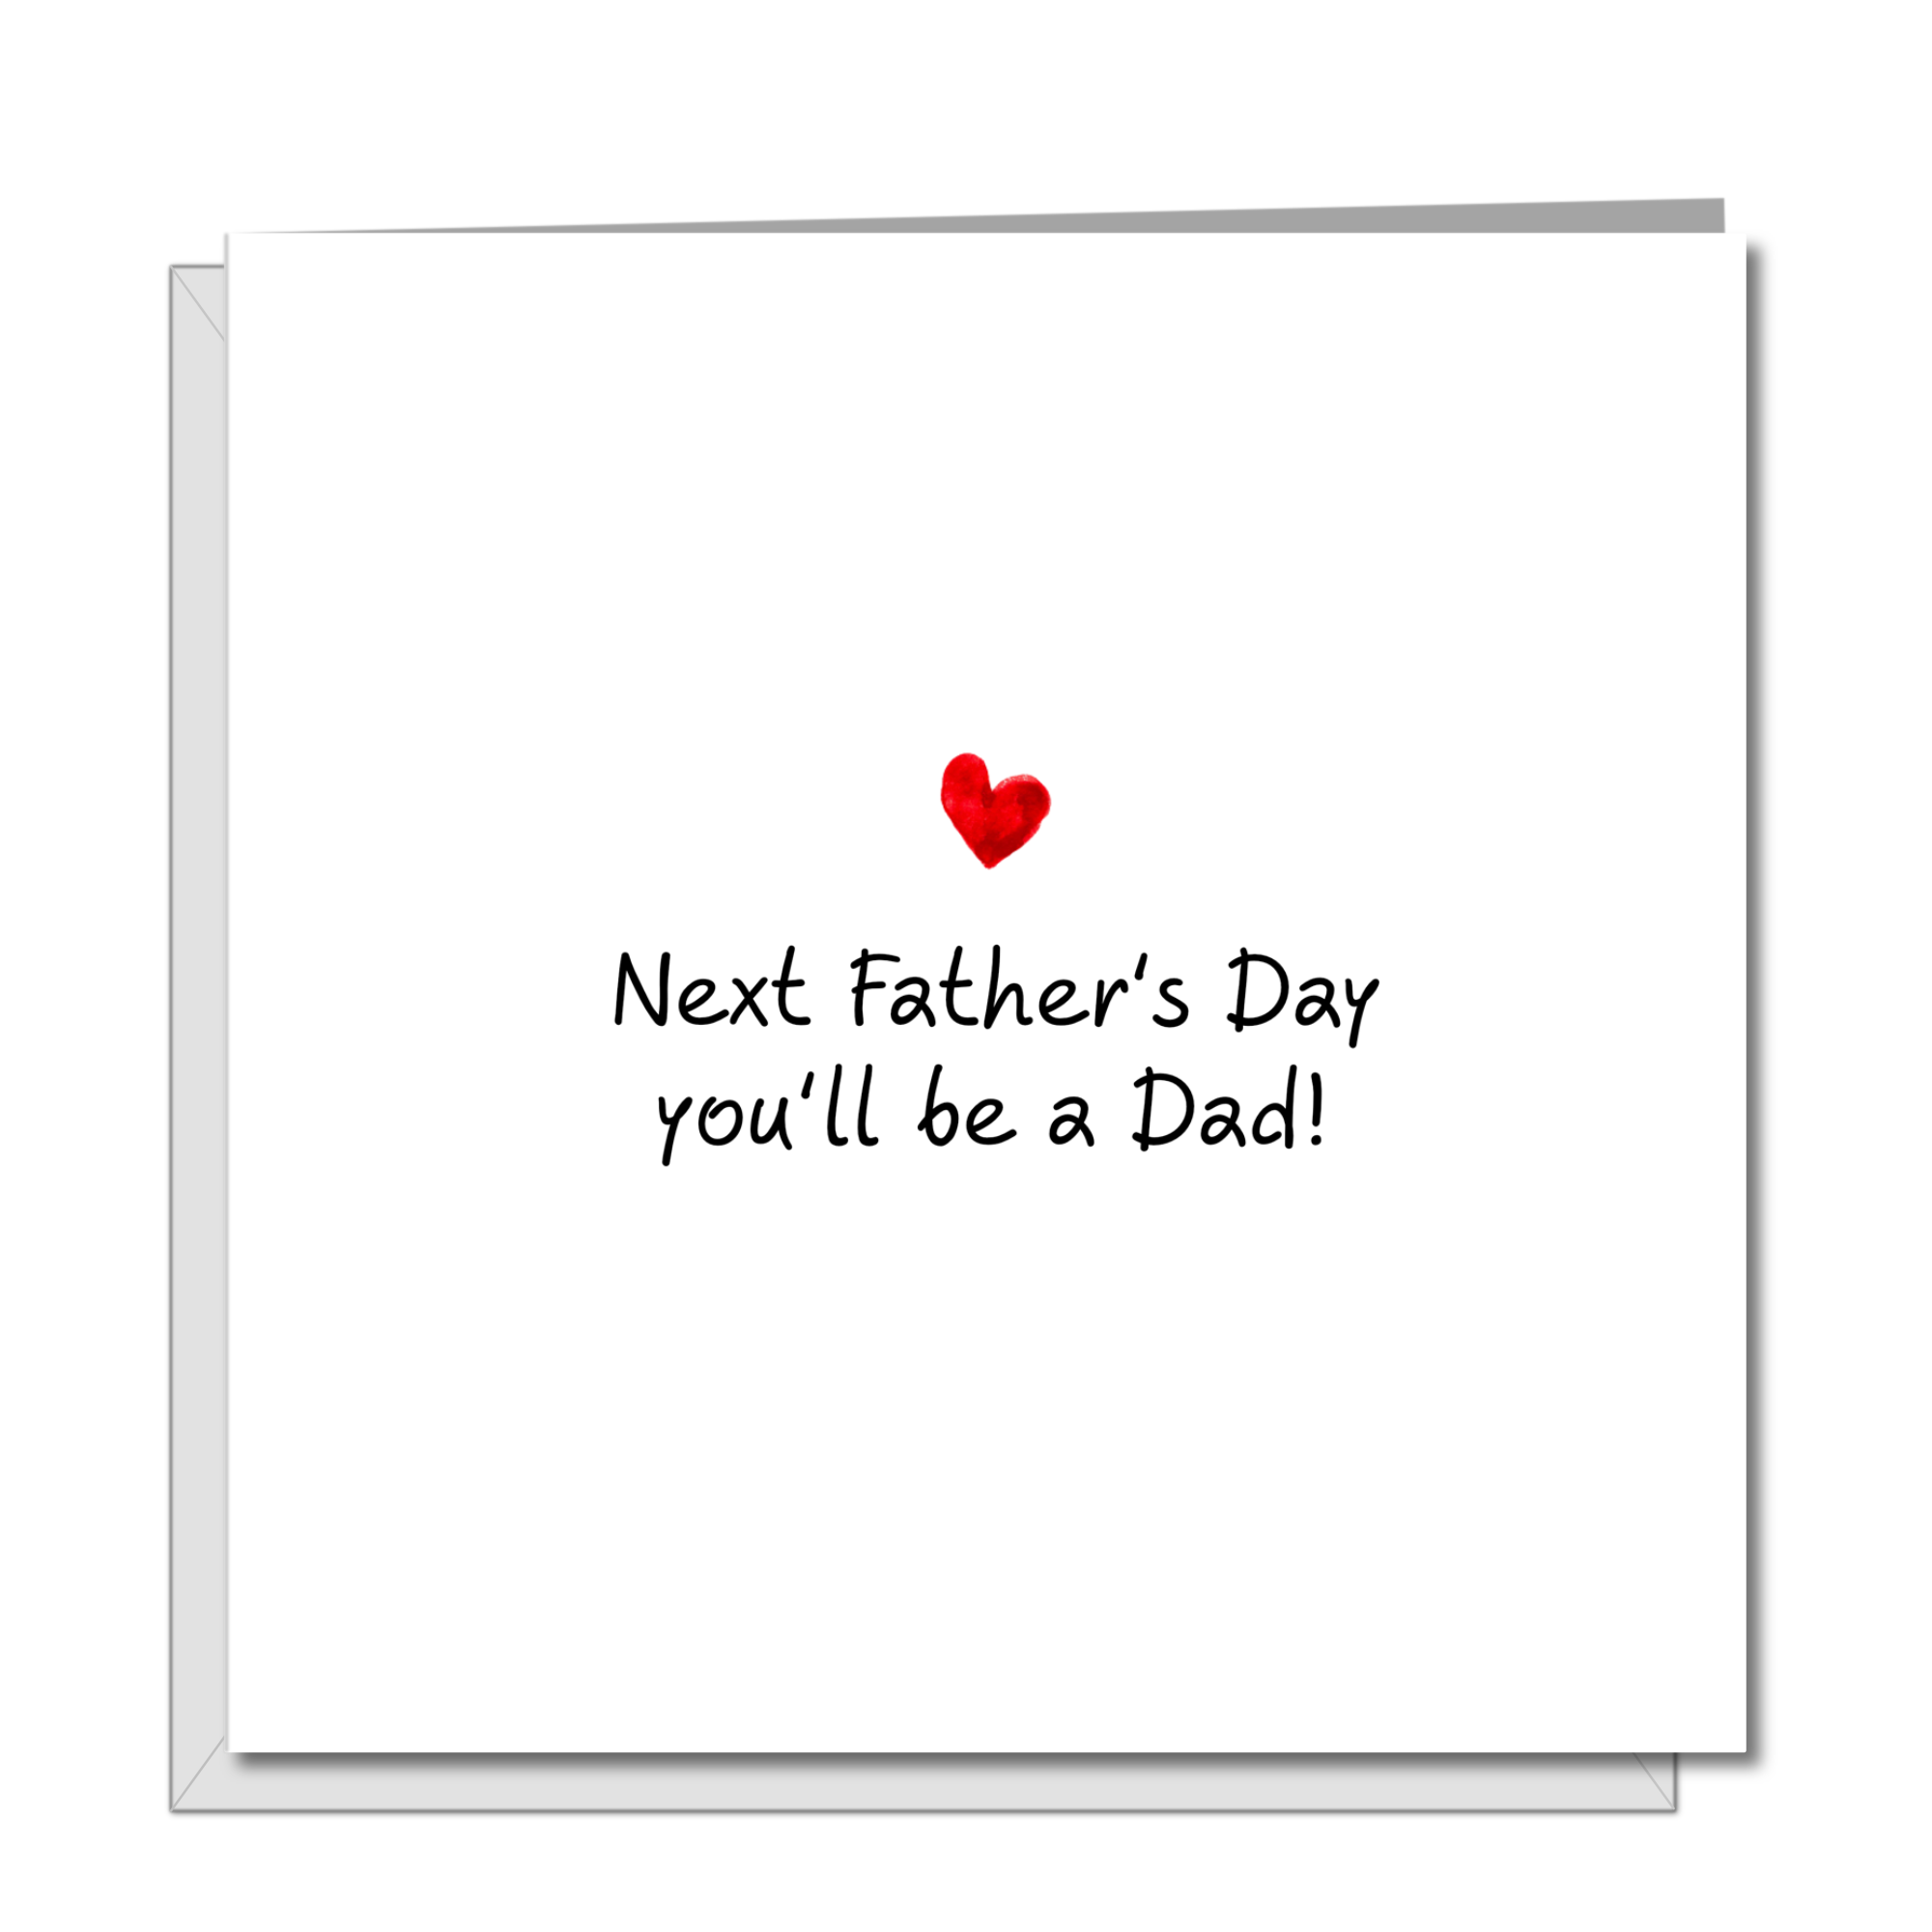 Father's Day Card to new Dad, Dad-to-be, future father, Daddy from pregnant wife, expecting, mum-to-be,